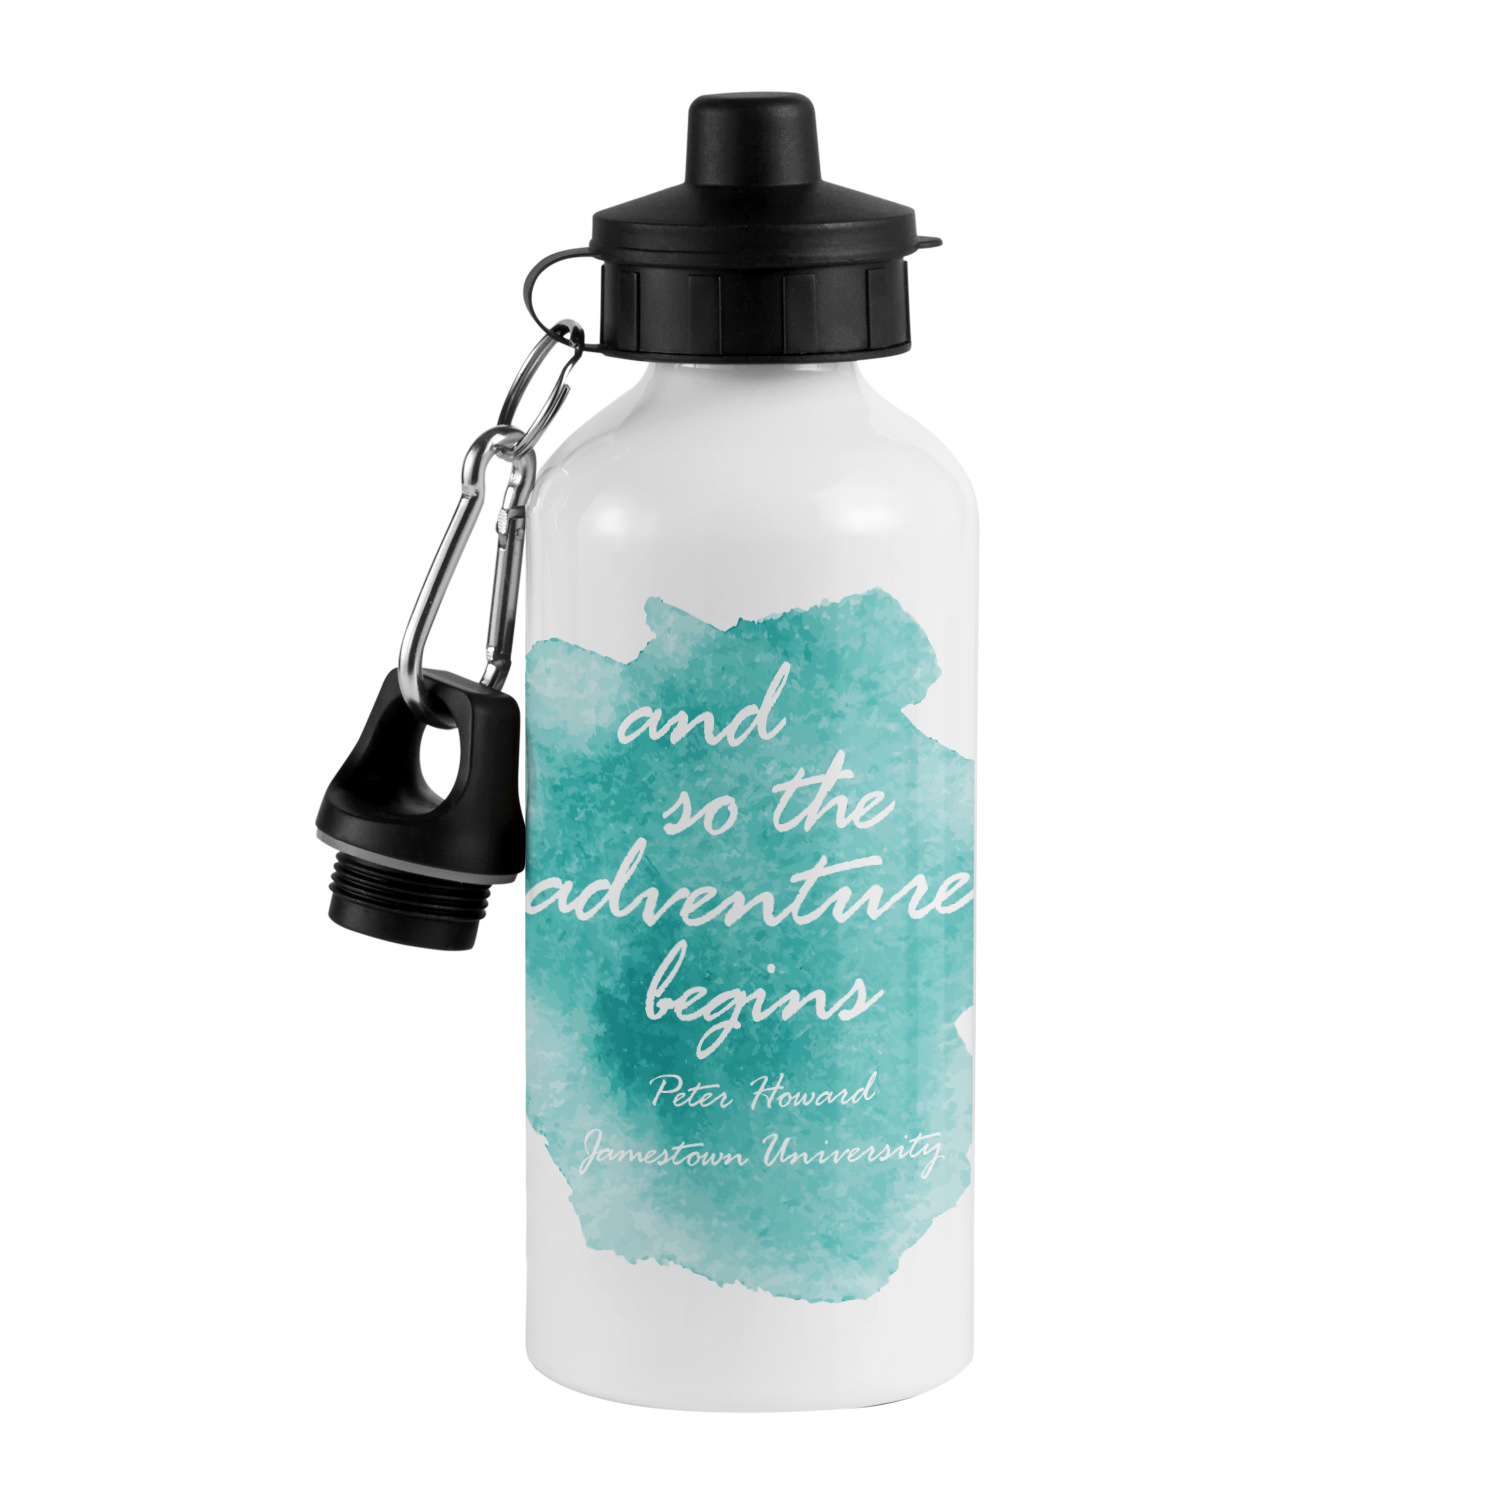 Personalized Adventure Begins Water Bottle Available in Blue or Coral